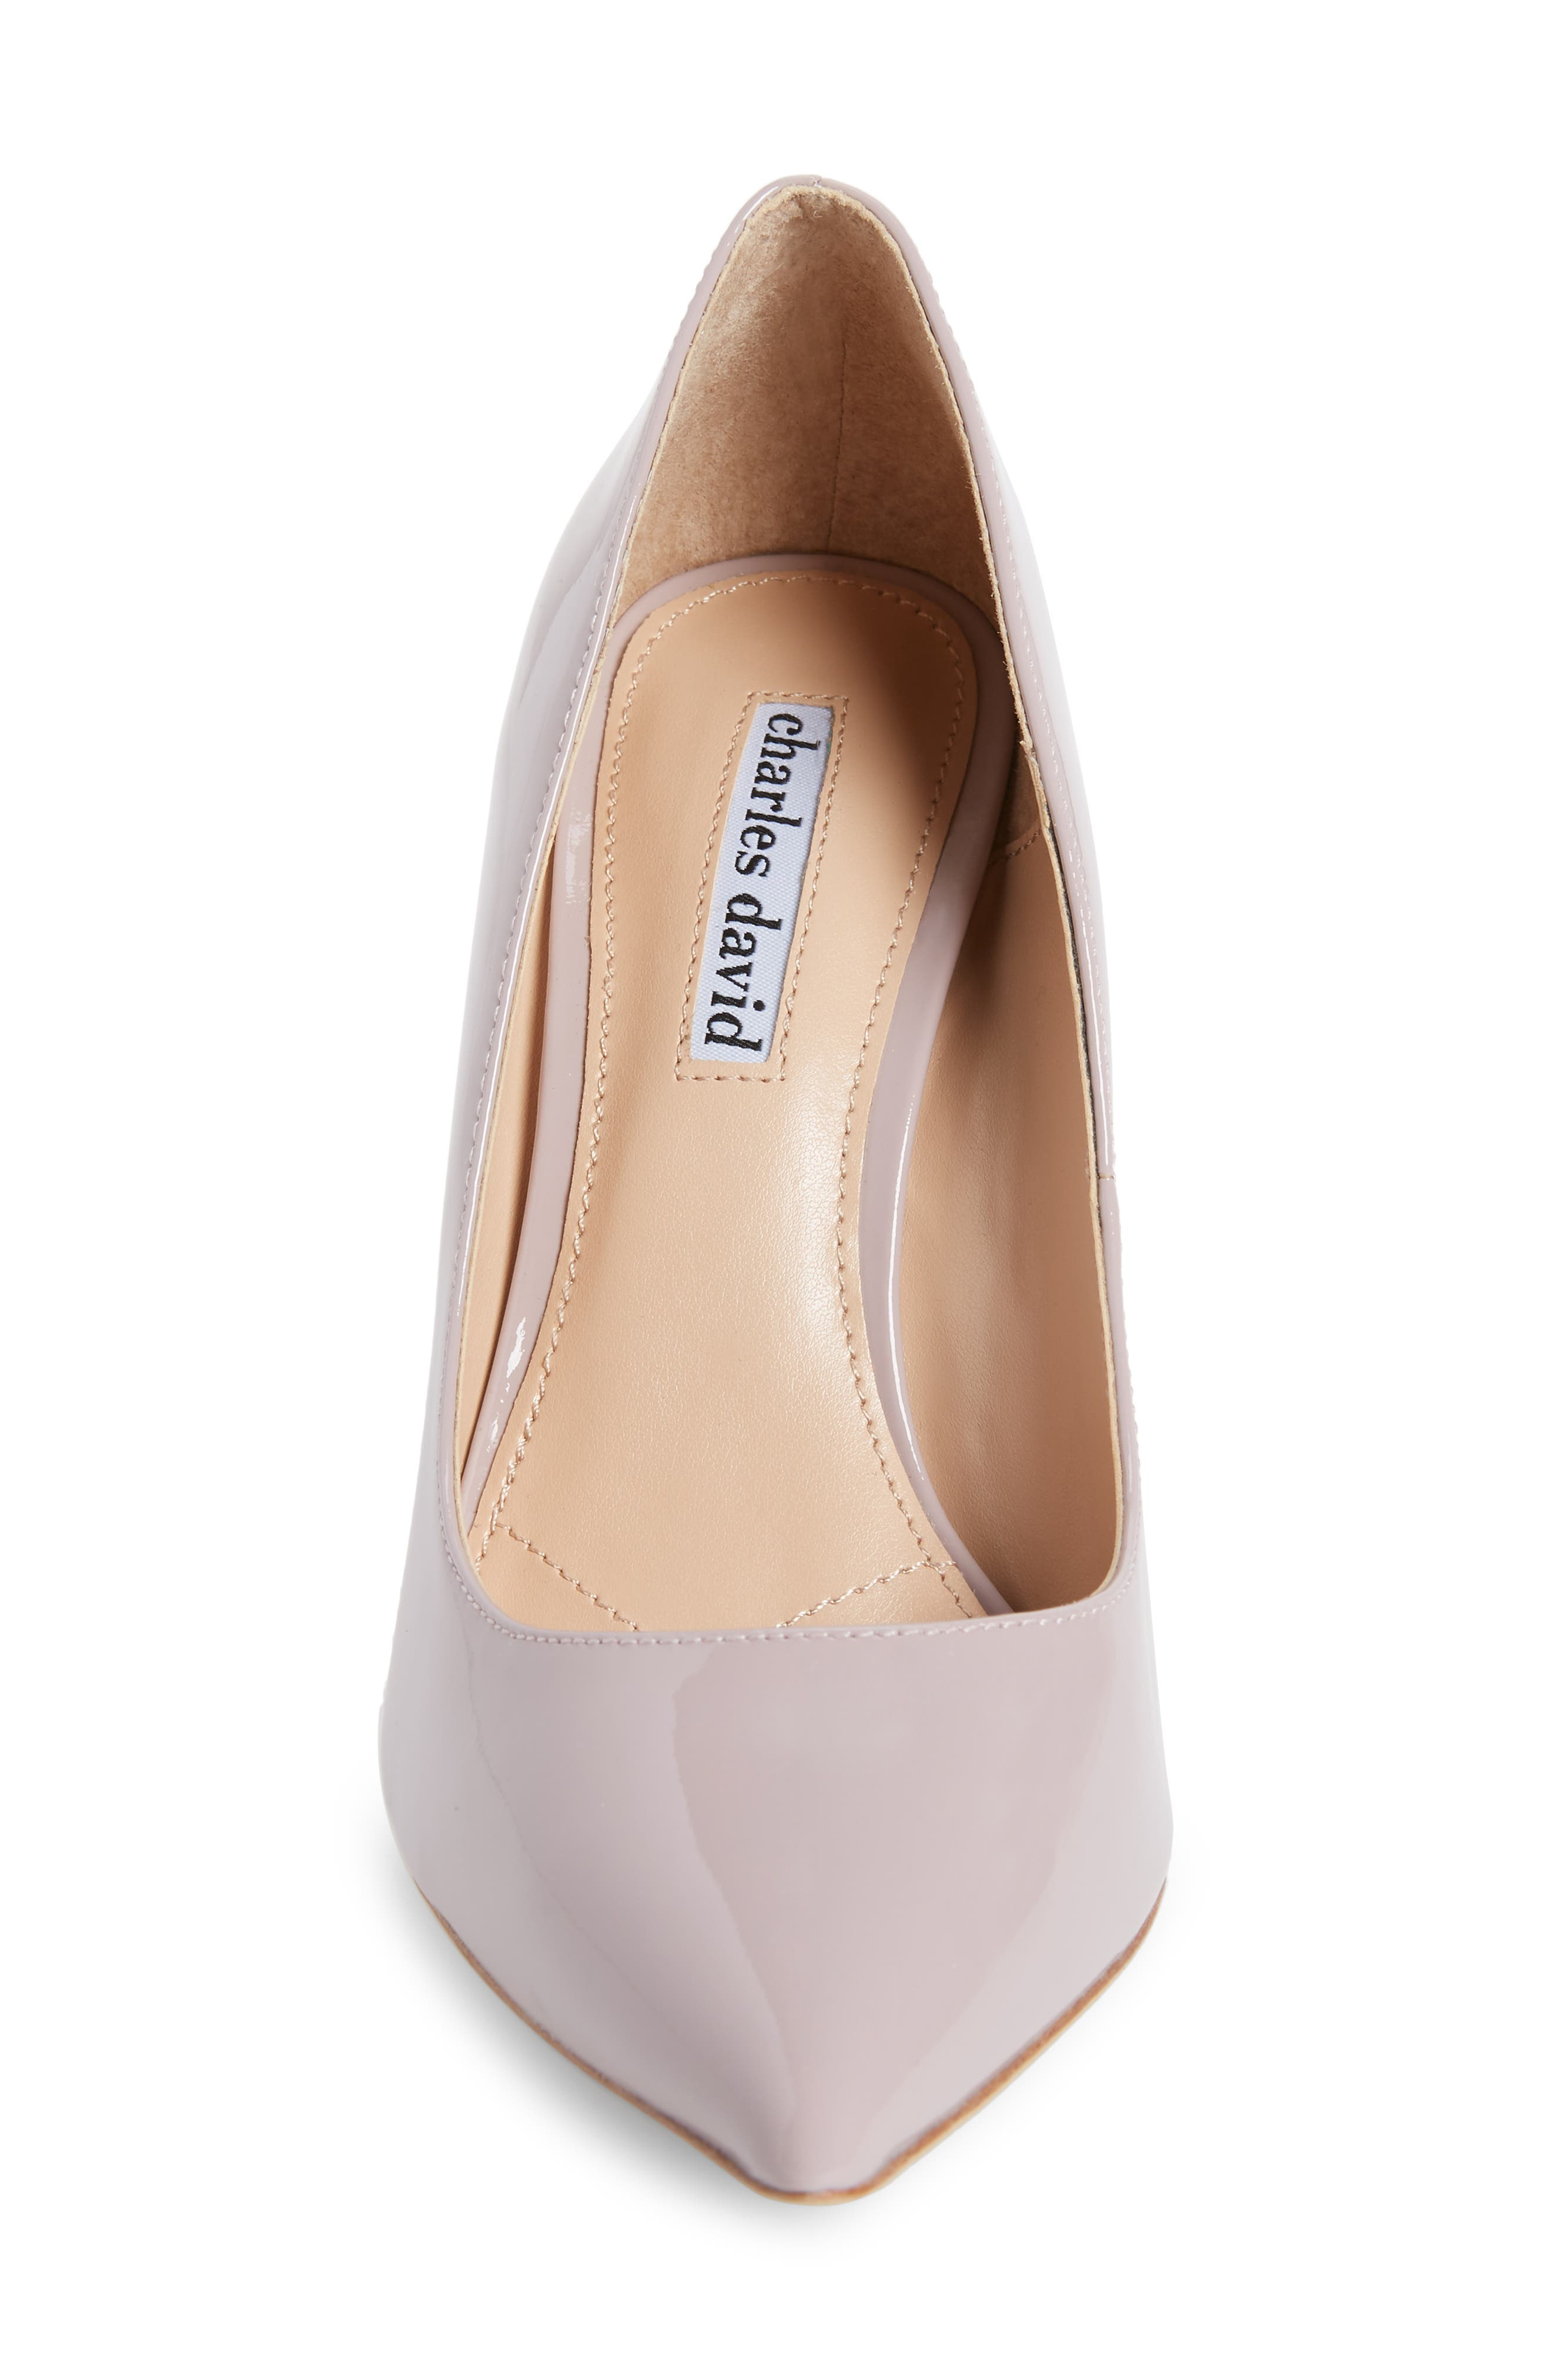 Calessi Pointy Toe Pump,                             Alternate thumbnail 4, color,                             LAVENDER PATENT LEATHER